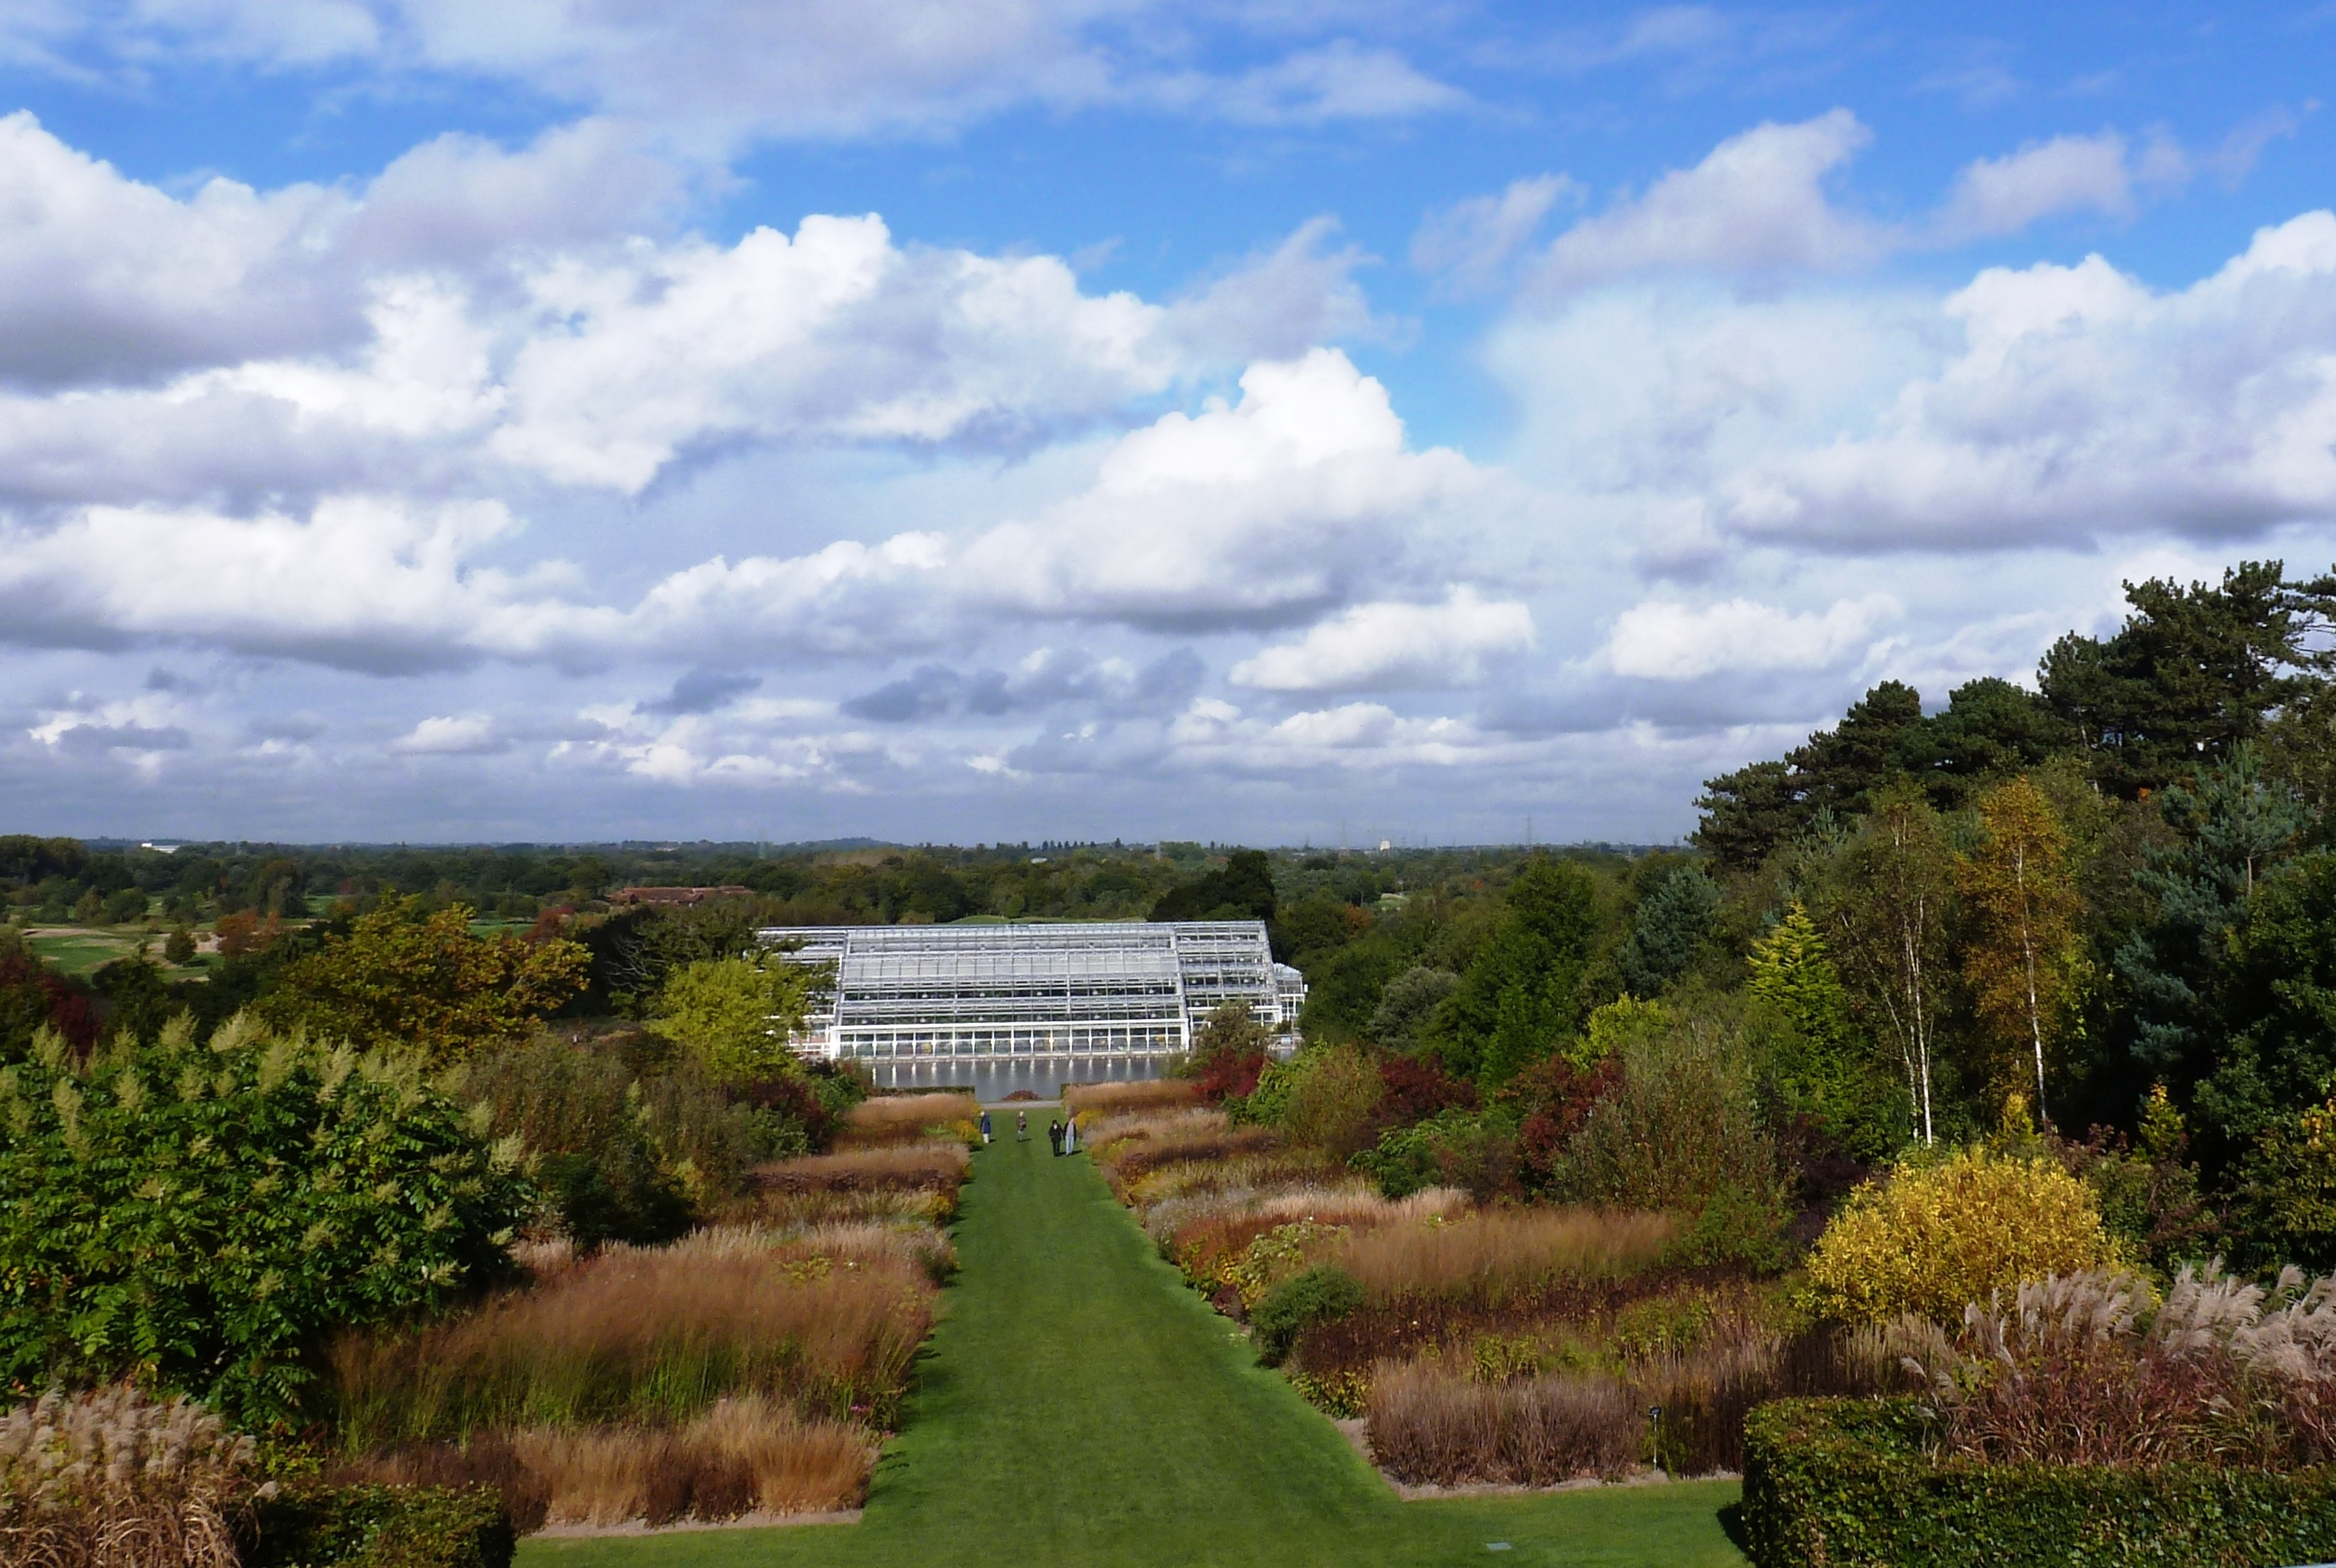 Piet Oudolf naturalistic plantings at Wisley